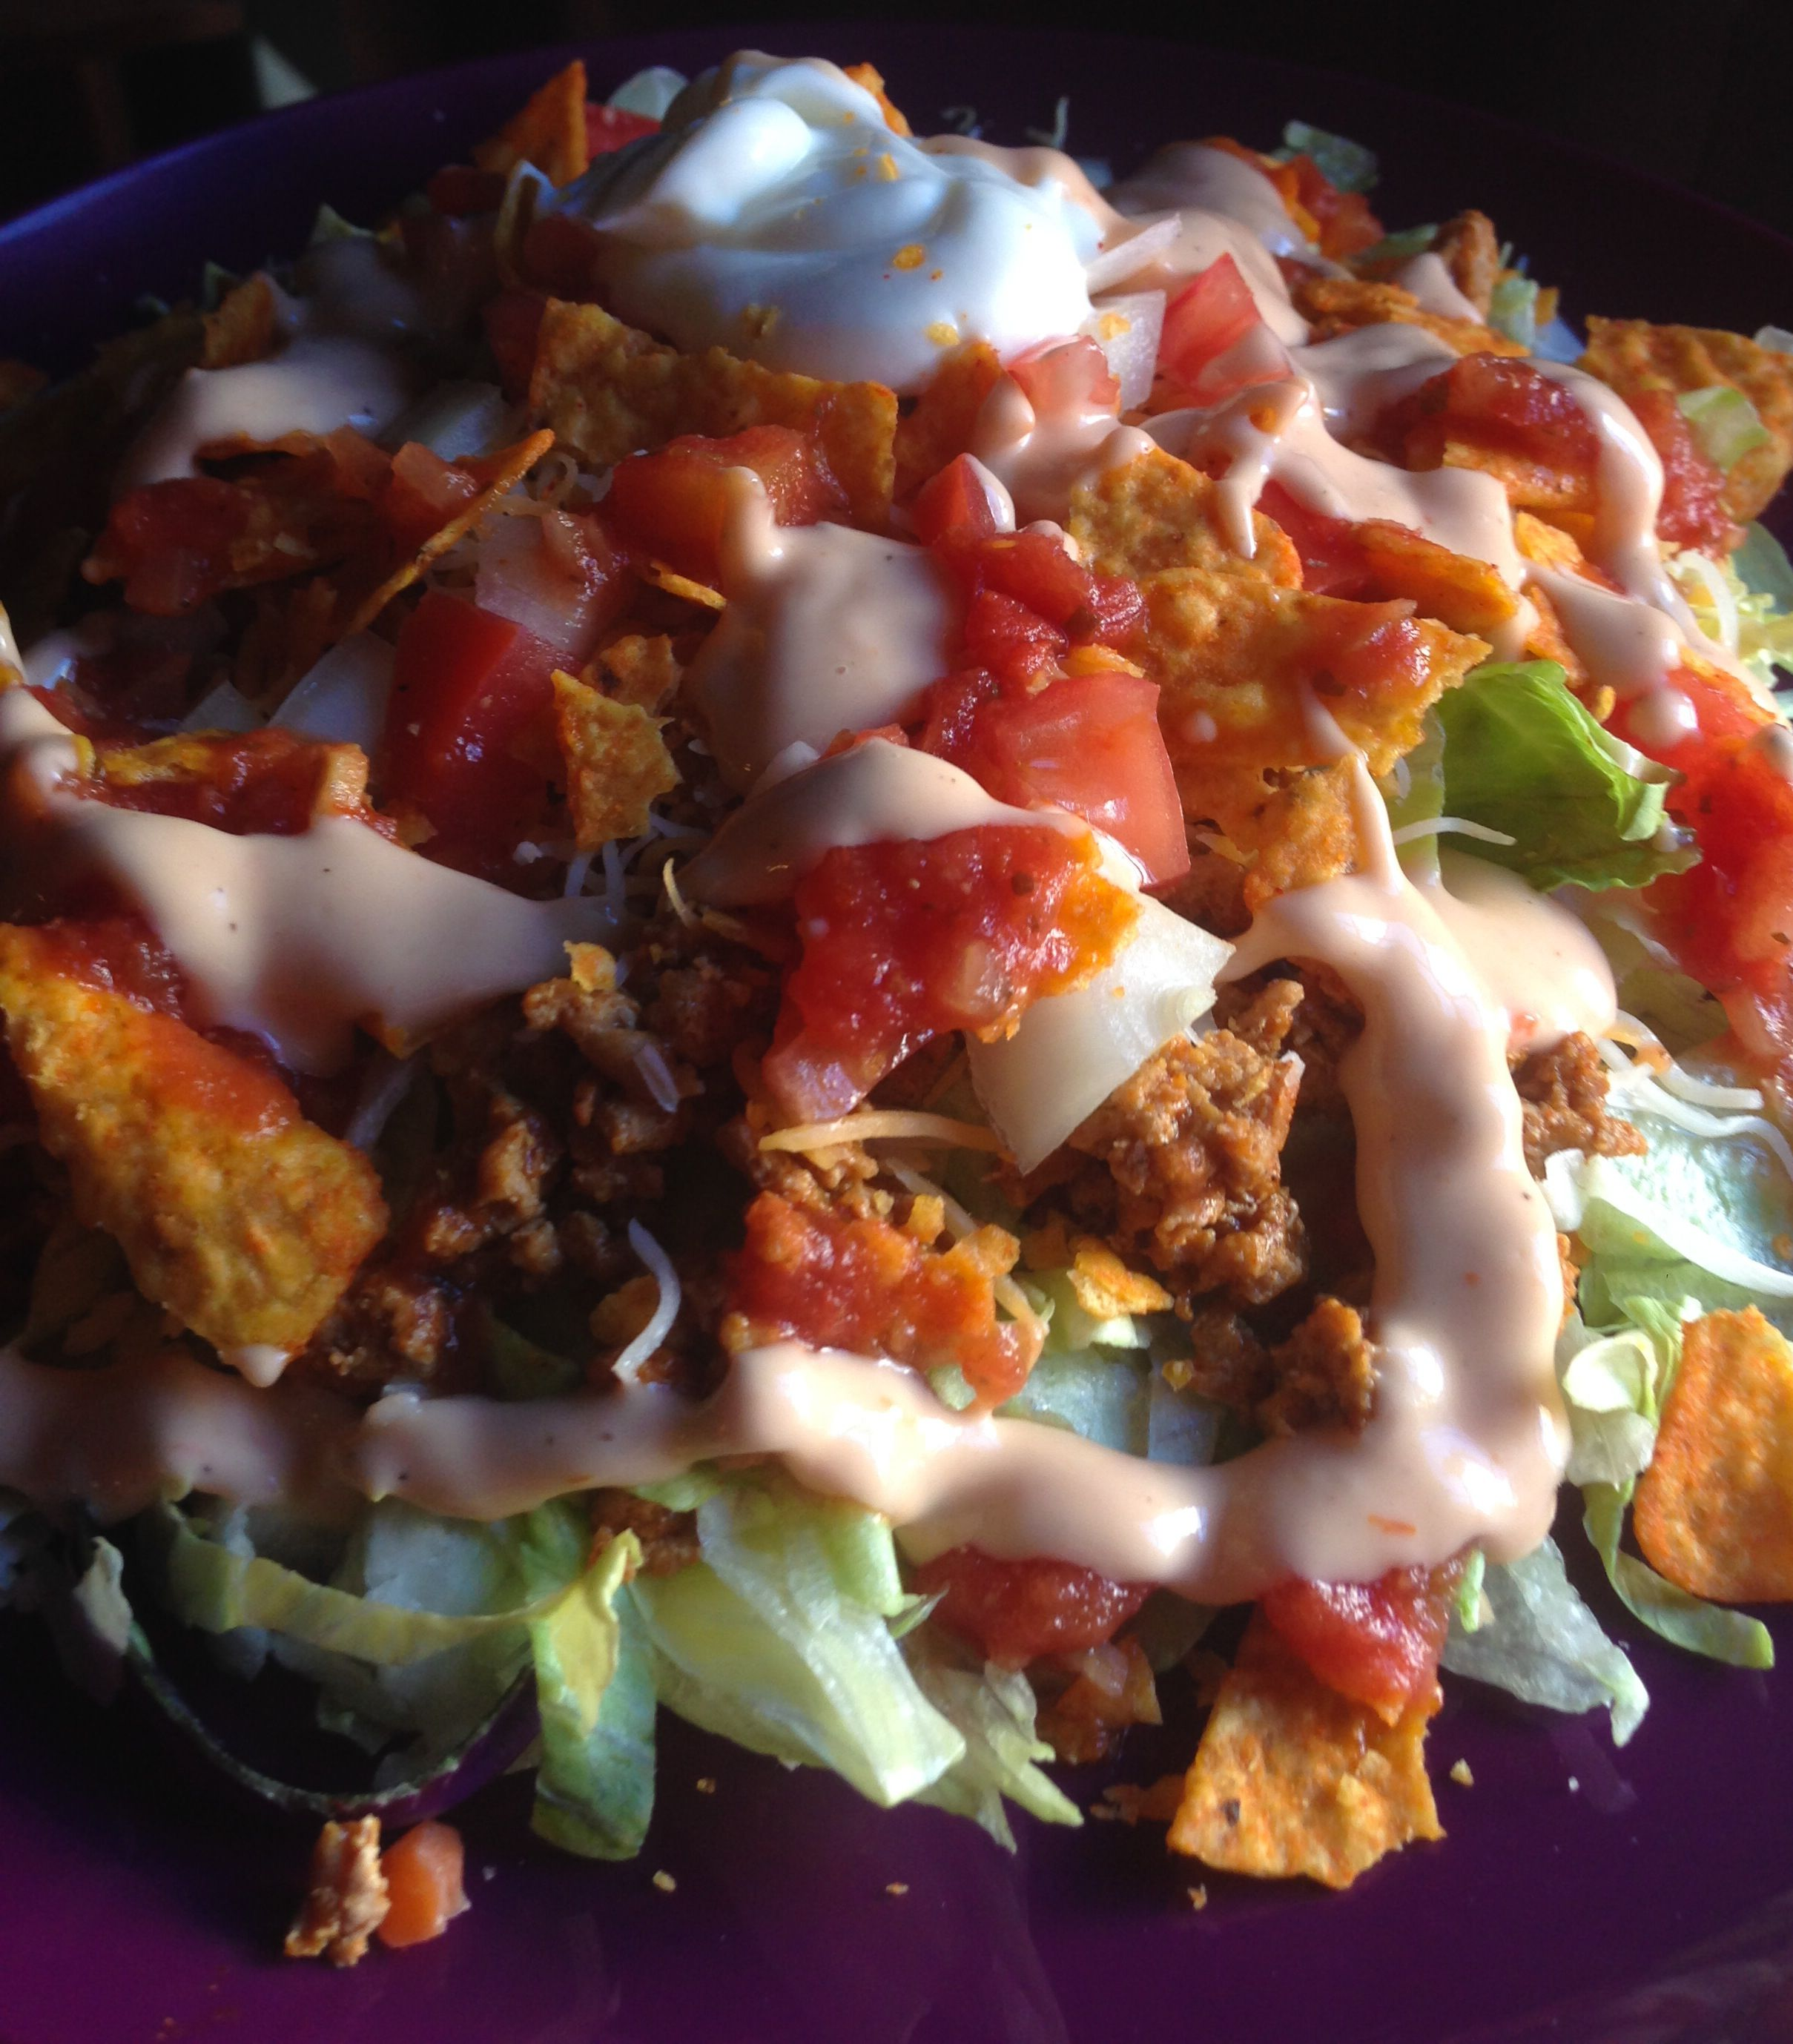 9 Points Plus - Doritos Taco Salad. Lettuce topped with taco seasoned ground turkey, reduced fat cheese, onions, tomatoes, fat free sour cream, salsa, Kraft Light Fiesta Salsa Ranch and of course Doritos. The family eats it as Doritos as the base and a little of the other toppings but I made the lettuce the base. So yummy!